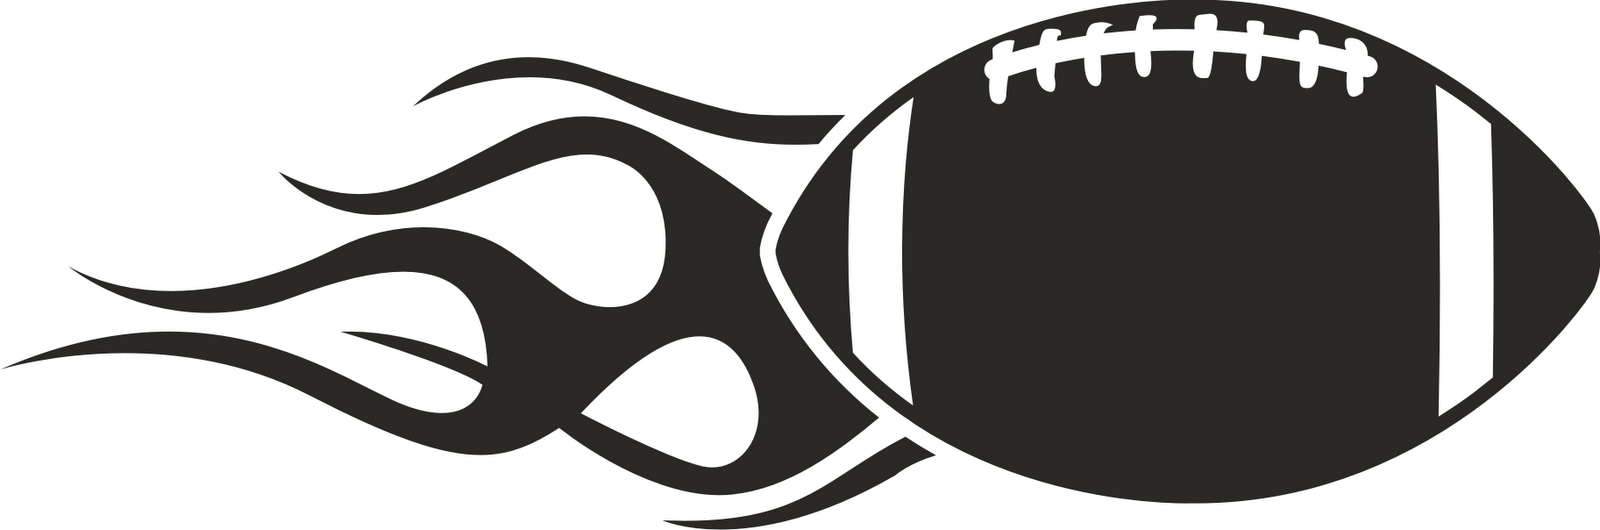 Football Clipart Black...